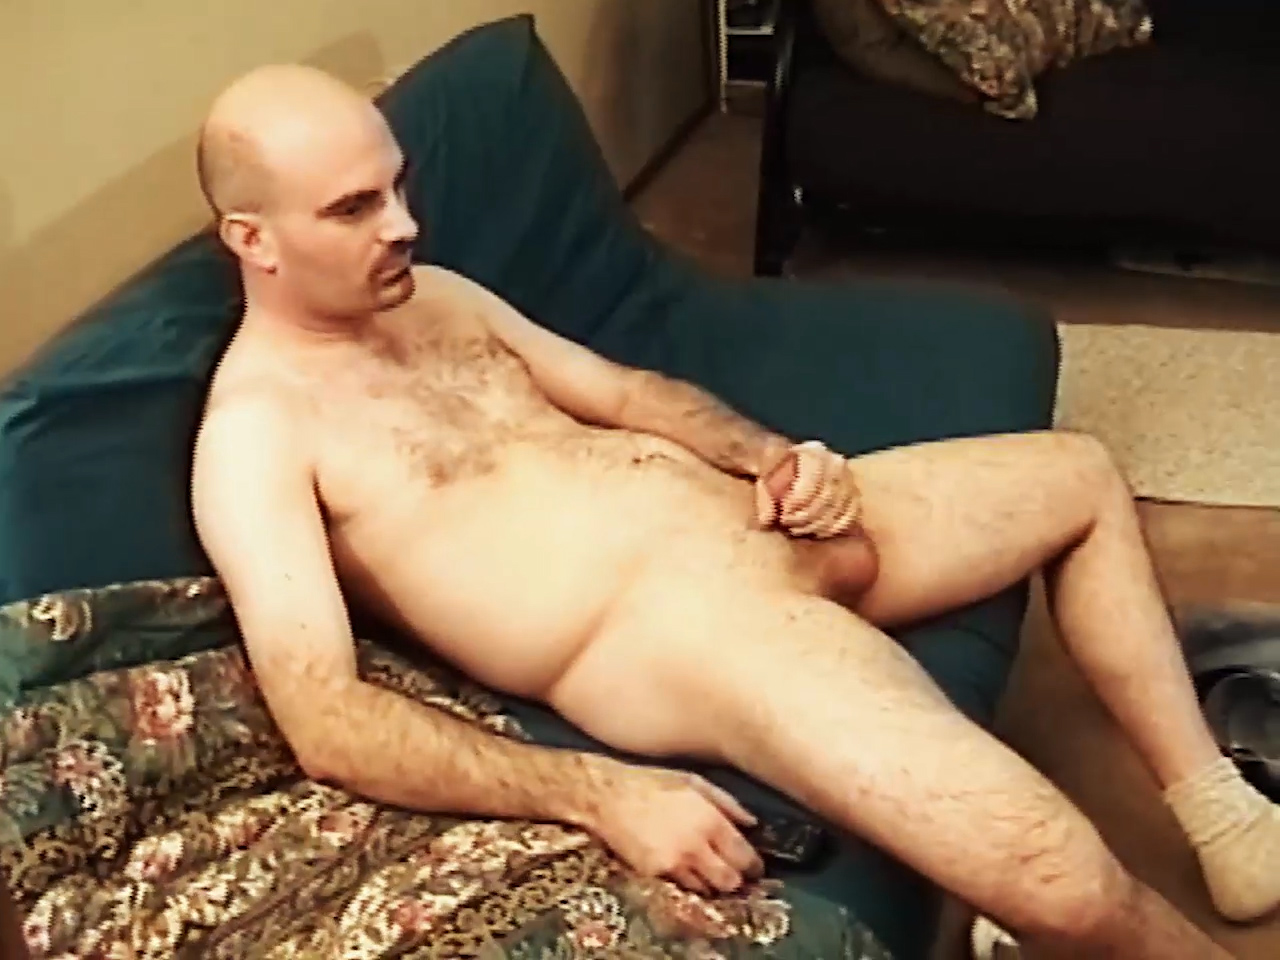 Young Amateur Brad Jerks Off - RamjetVideo Dildos in asses gifs